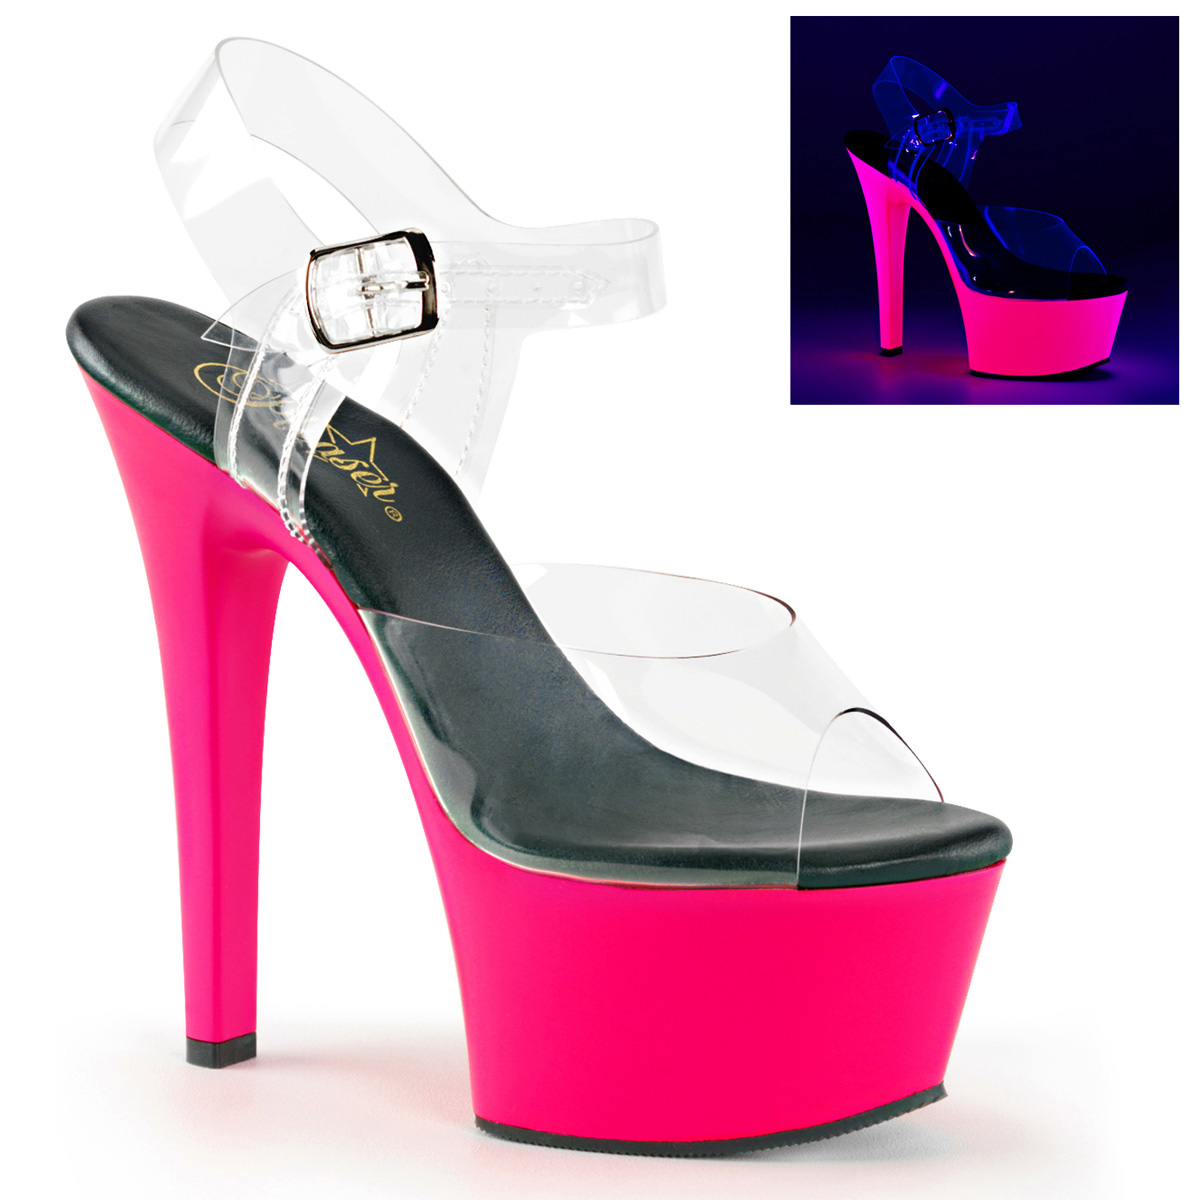 6 Inch Stiletto Heel Neon Reactive Platform Sandals